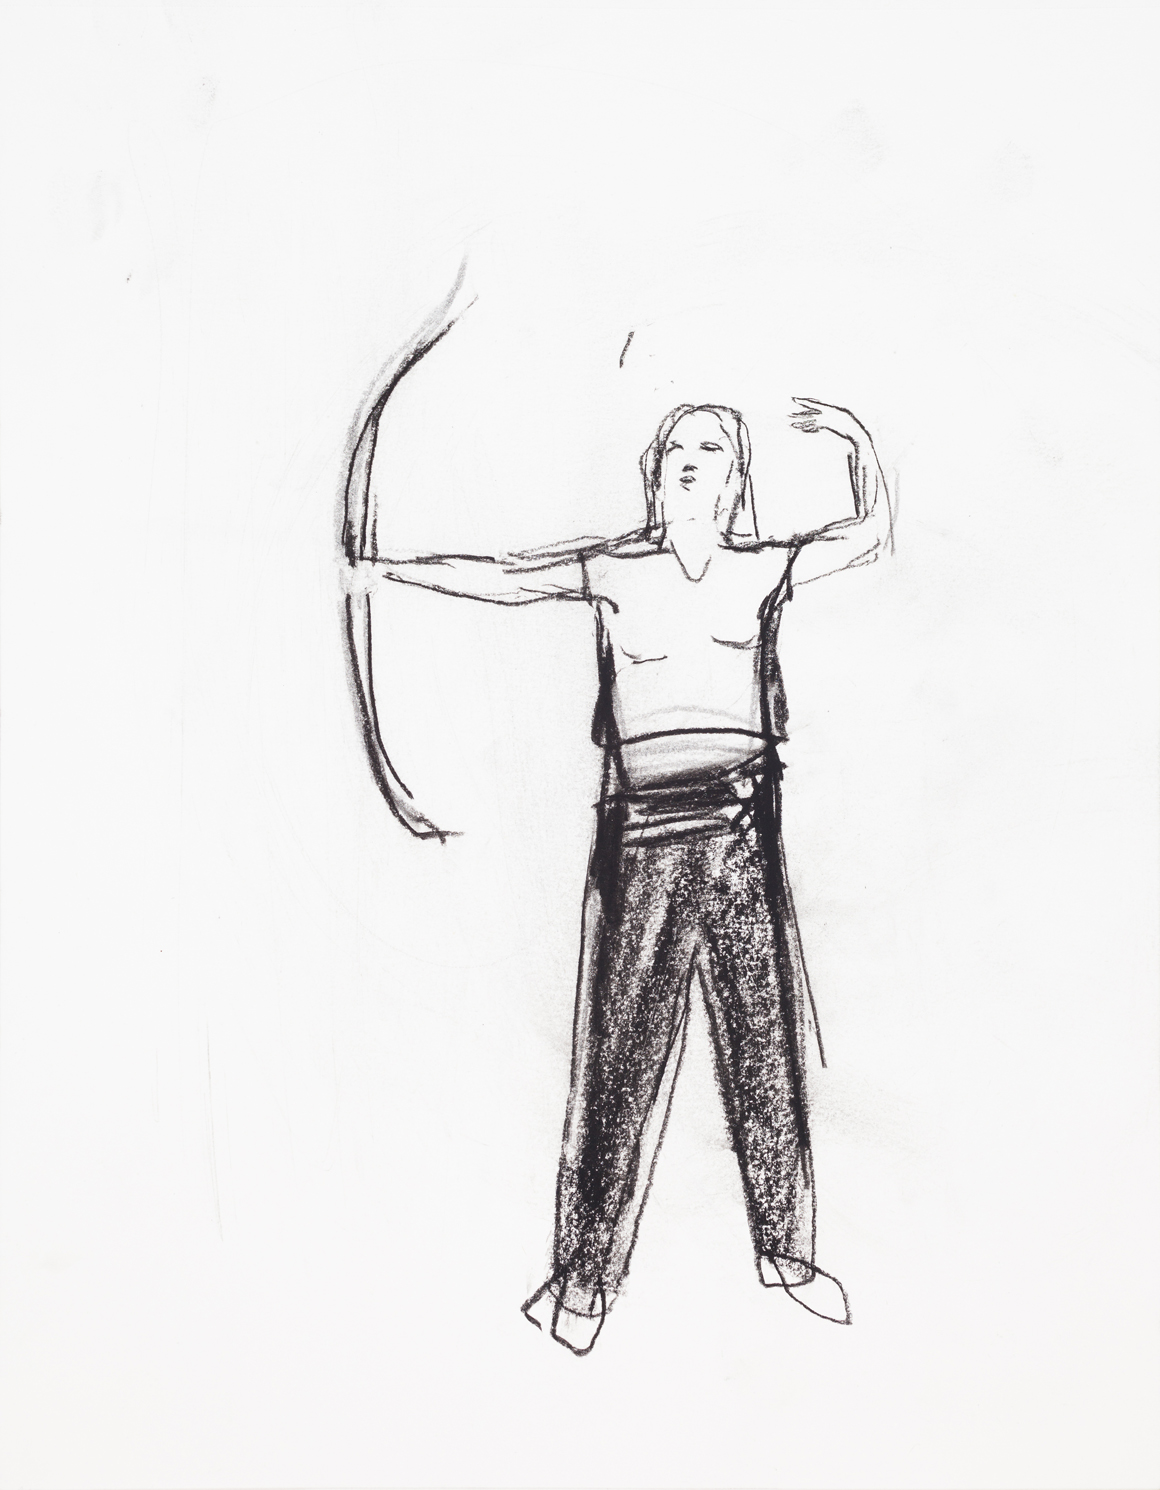 """<p><span class=""""name"""">William Stockman</span><br><em>Untitled (Archer 1)</em><span class='media'>charcoal on paper</span>14 x 11in 16 1/8i x 13 5/8in Framed<br>2014<br><a class='inquire' href='mailto:info@gildargallery.com?subject=Artwork Inquiry WSTO0039&body=I am interested in finding out more about Untitled (Archer 1) by William Stockman'>Inquire</a></p>"""